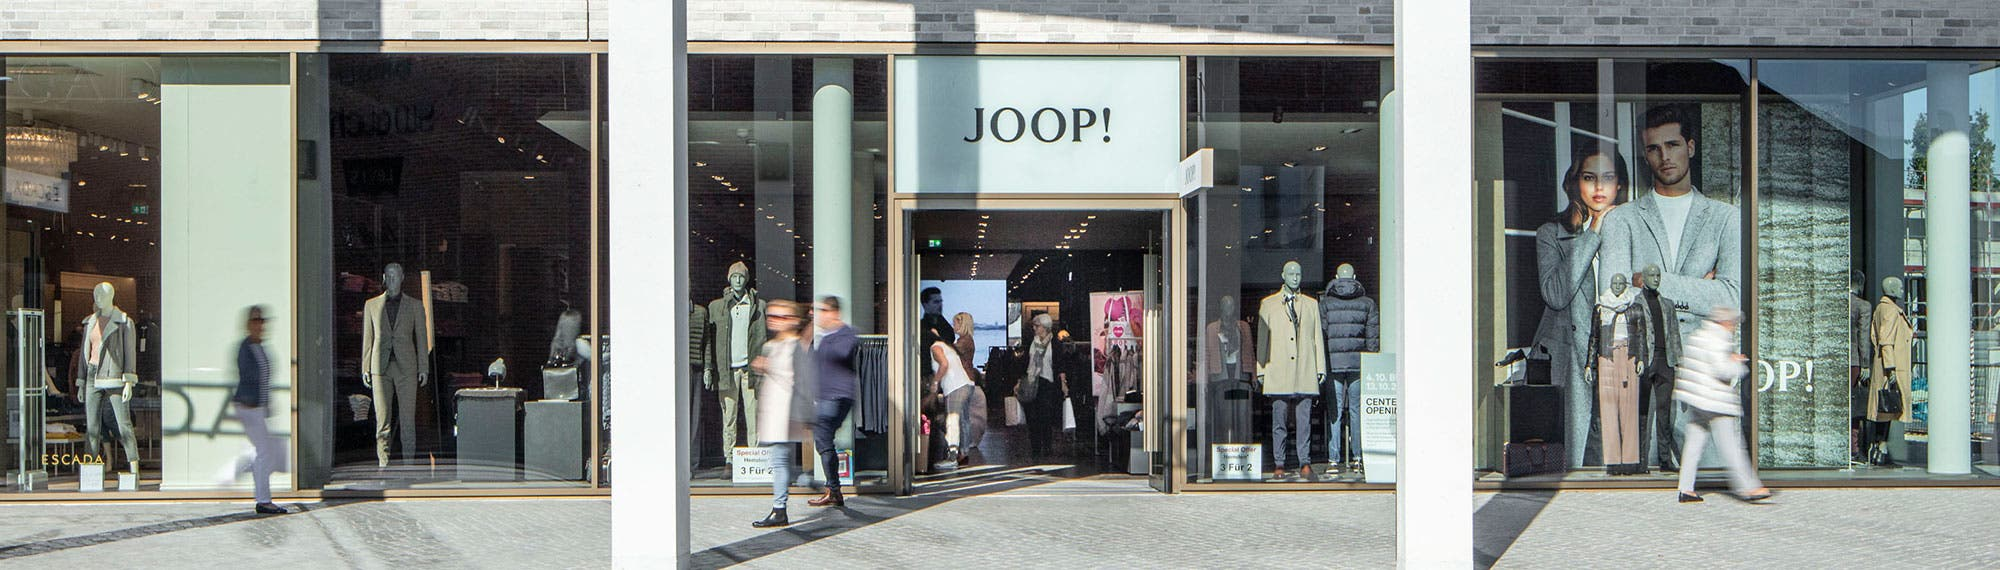 Joop Outlet In Germany Sale Up To 70 Off Outletcity Metzingen